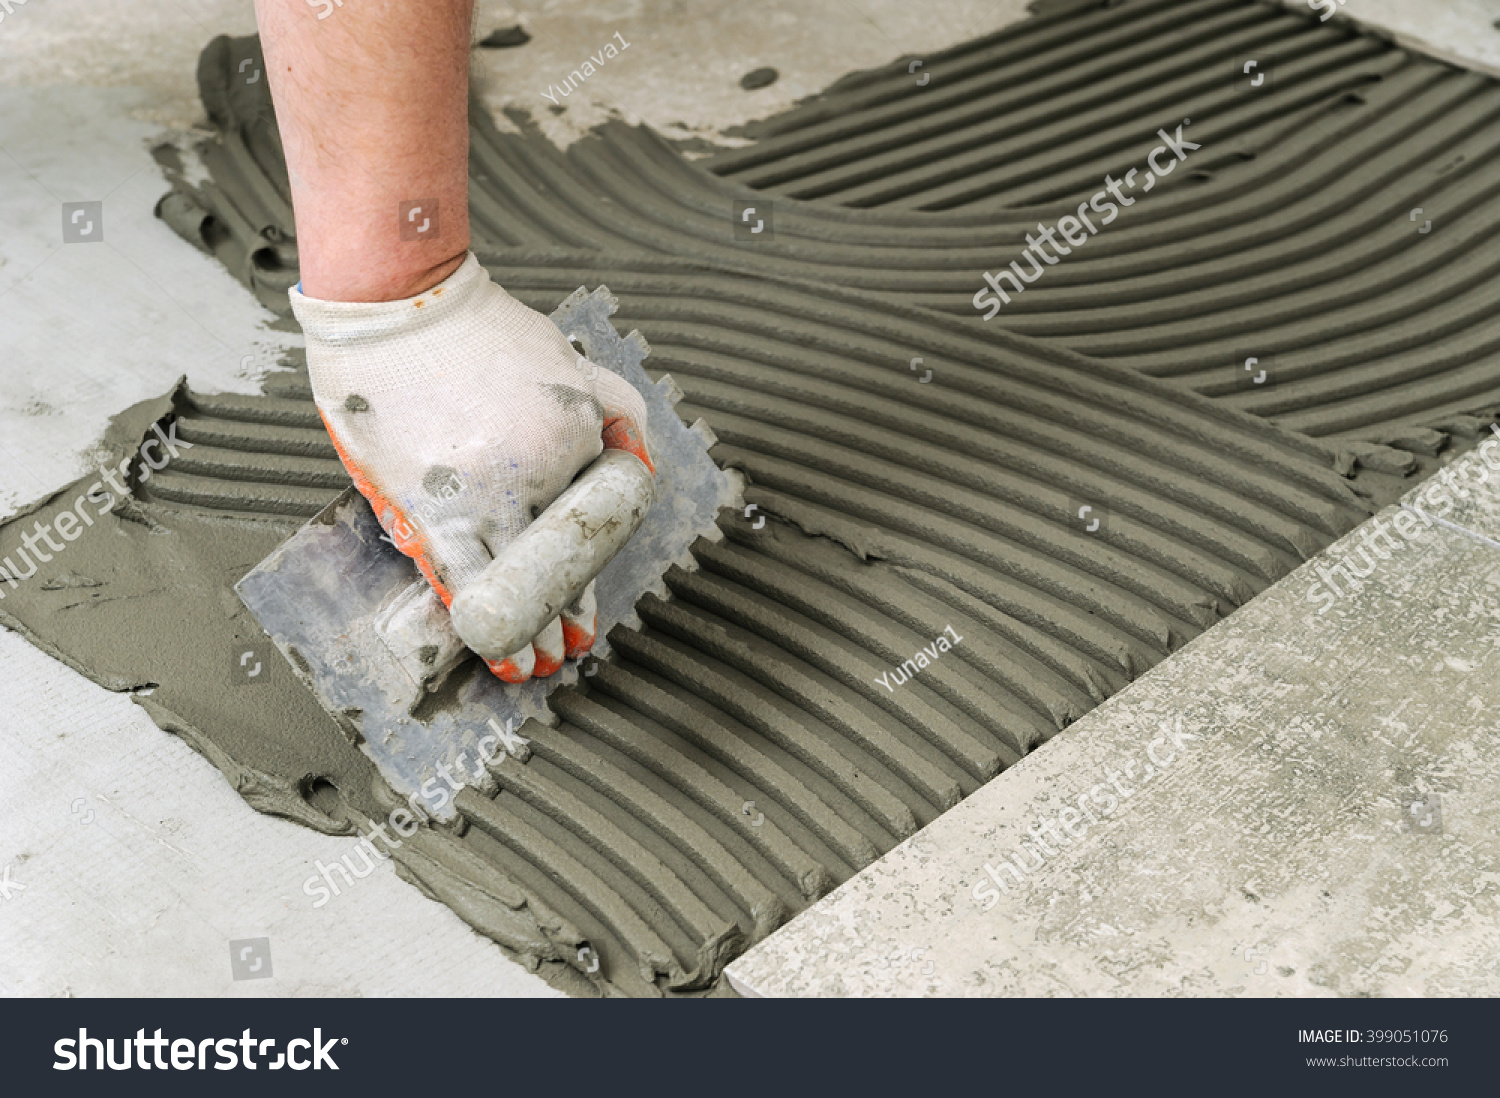 Laying ceramic tiles troweling mortar onto stock photo 399051076 laying ceramic tiles troweling mortar onto a concrete floor in preparation for laying floor tile dailygadgetfo Choice Image